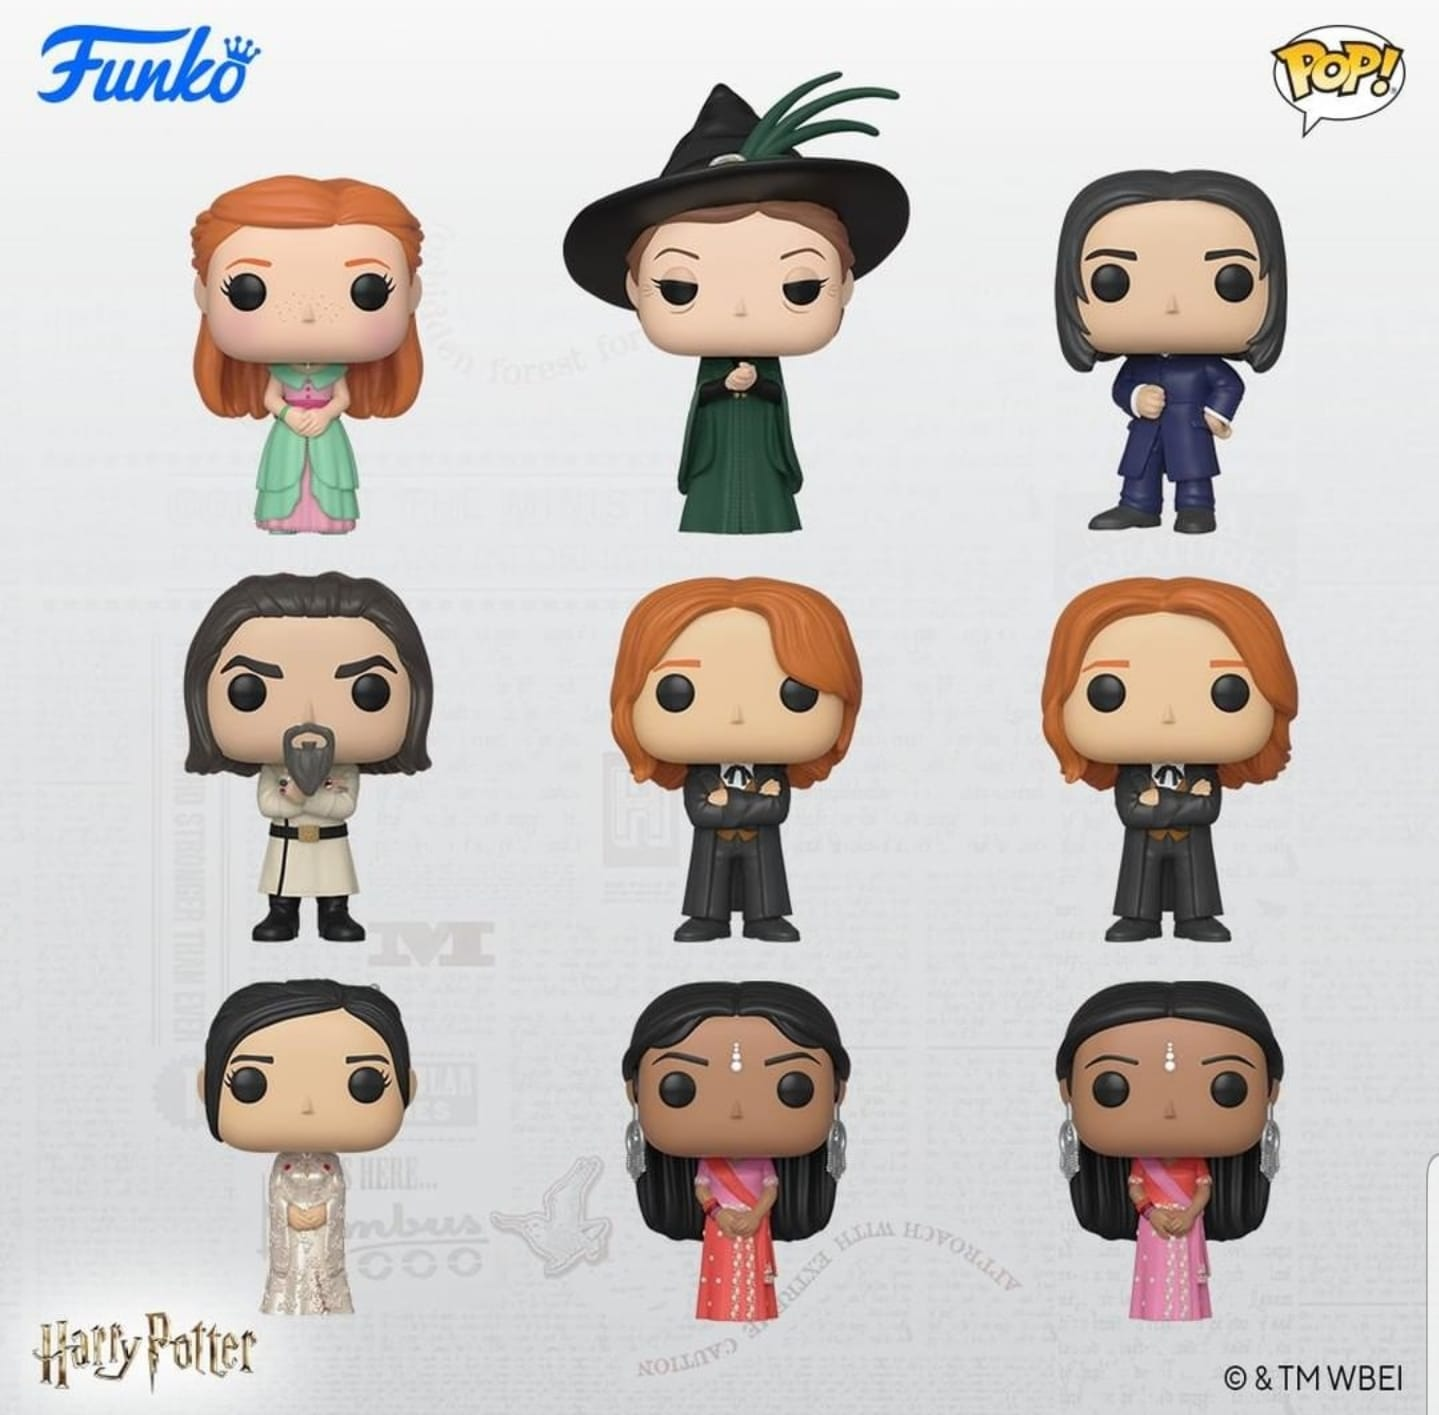 New Yule Ball Funko Pop! Figures Coming Soon! - The-Leaky